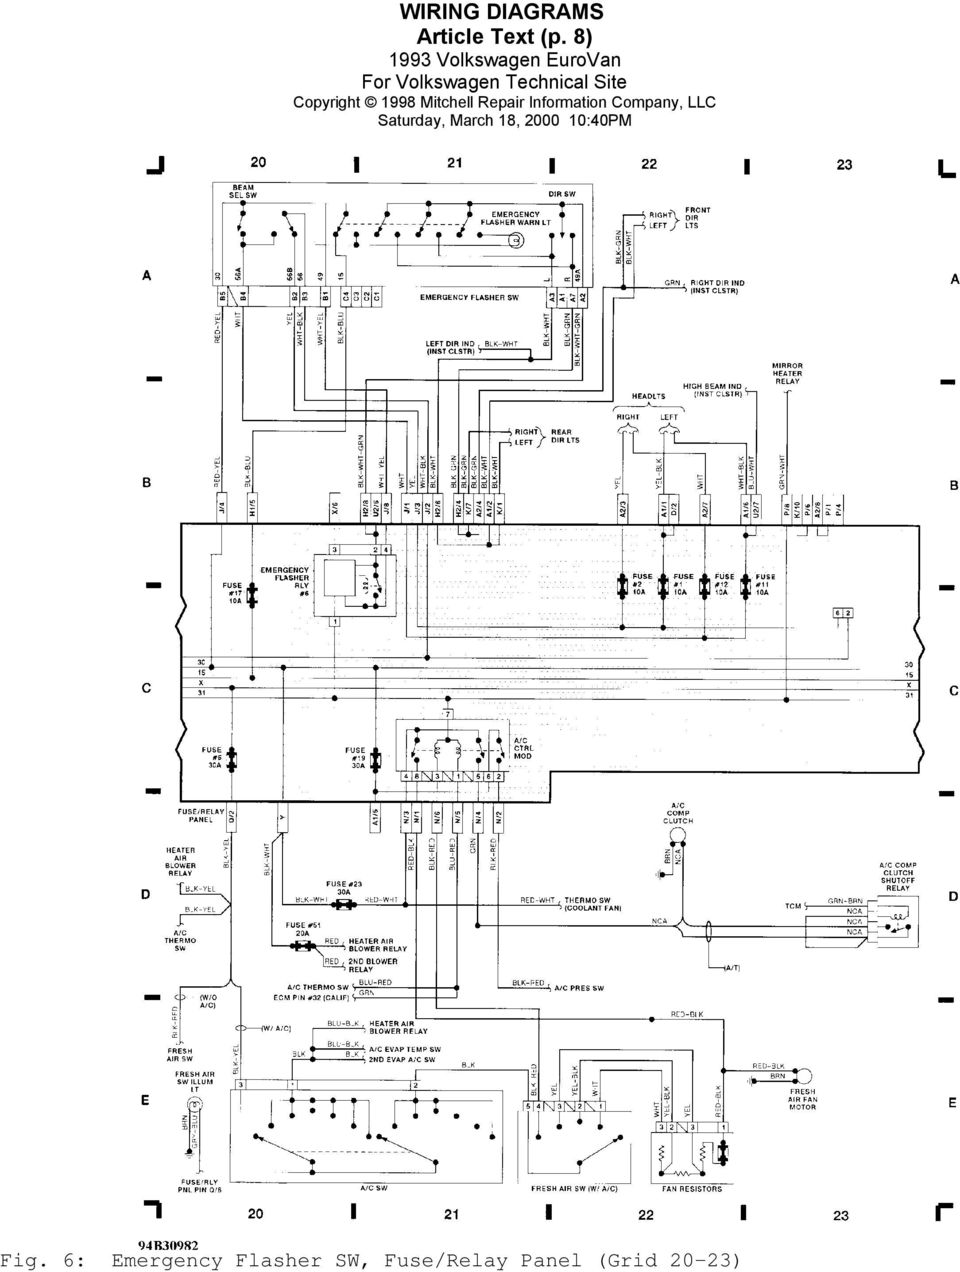 eurovan wiring diagram tacho connecting wiring diagram for yamaha r1 04 06 ... 2002 eurovan wiring diagram